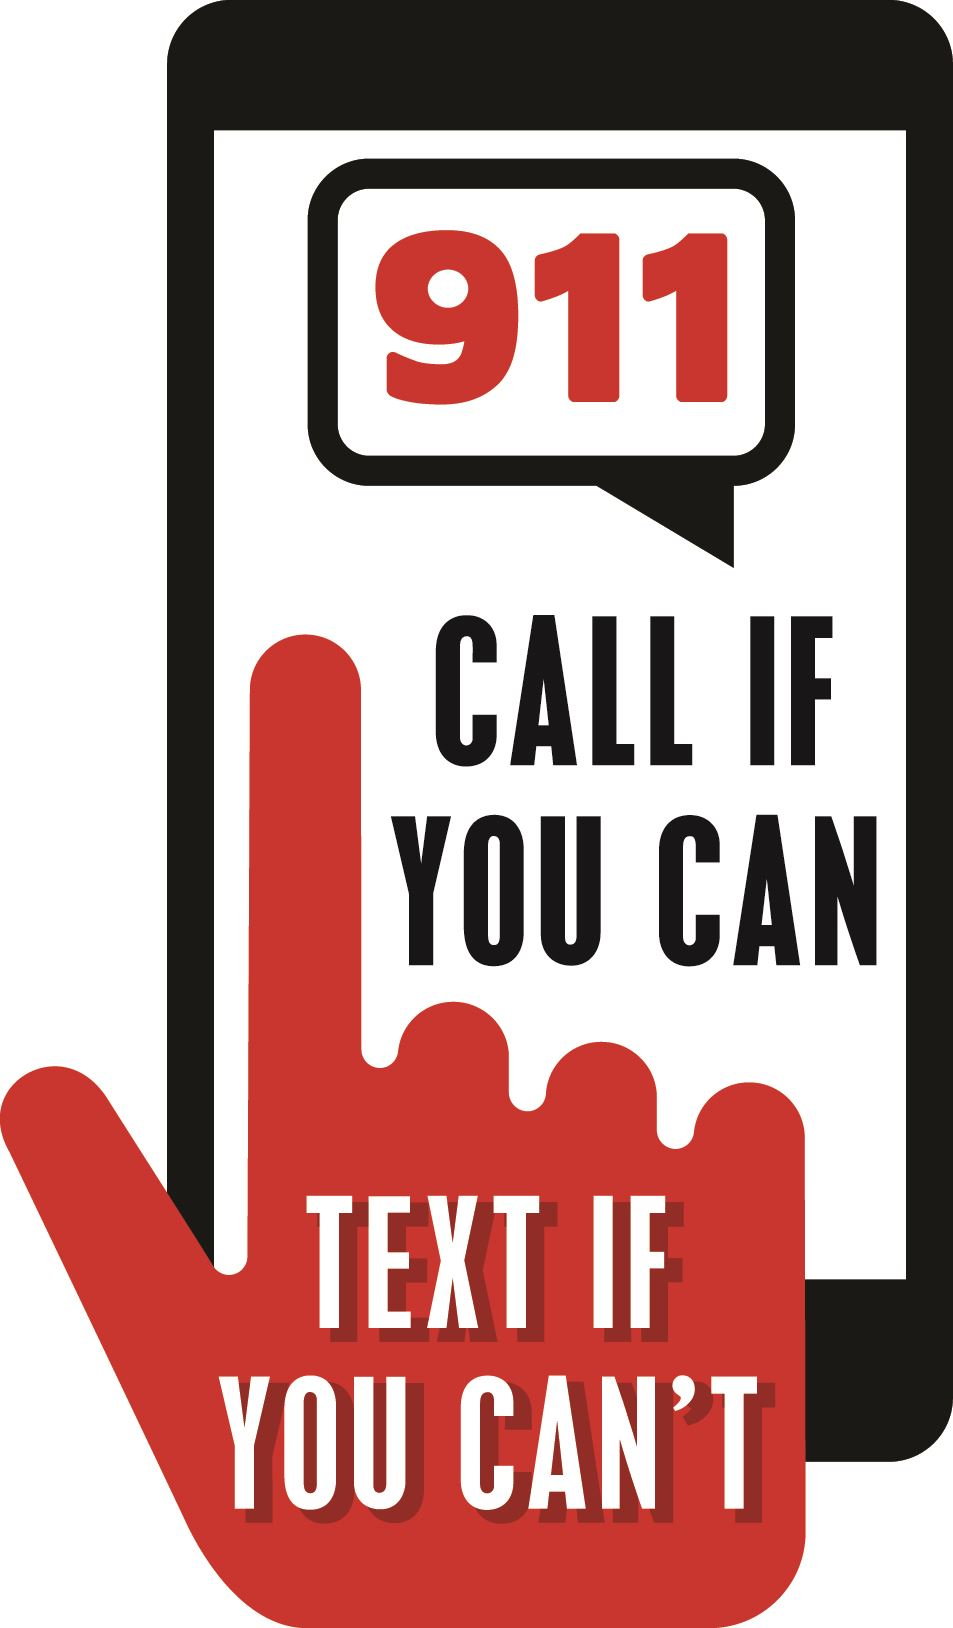 Logo for - 911 Call if You Can Text if You Can't